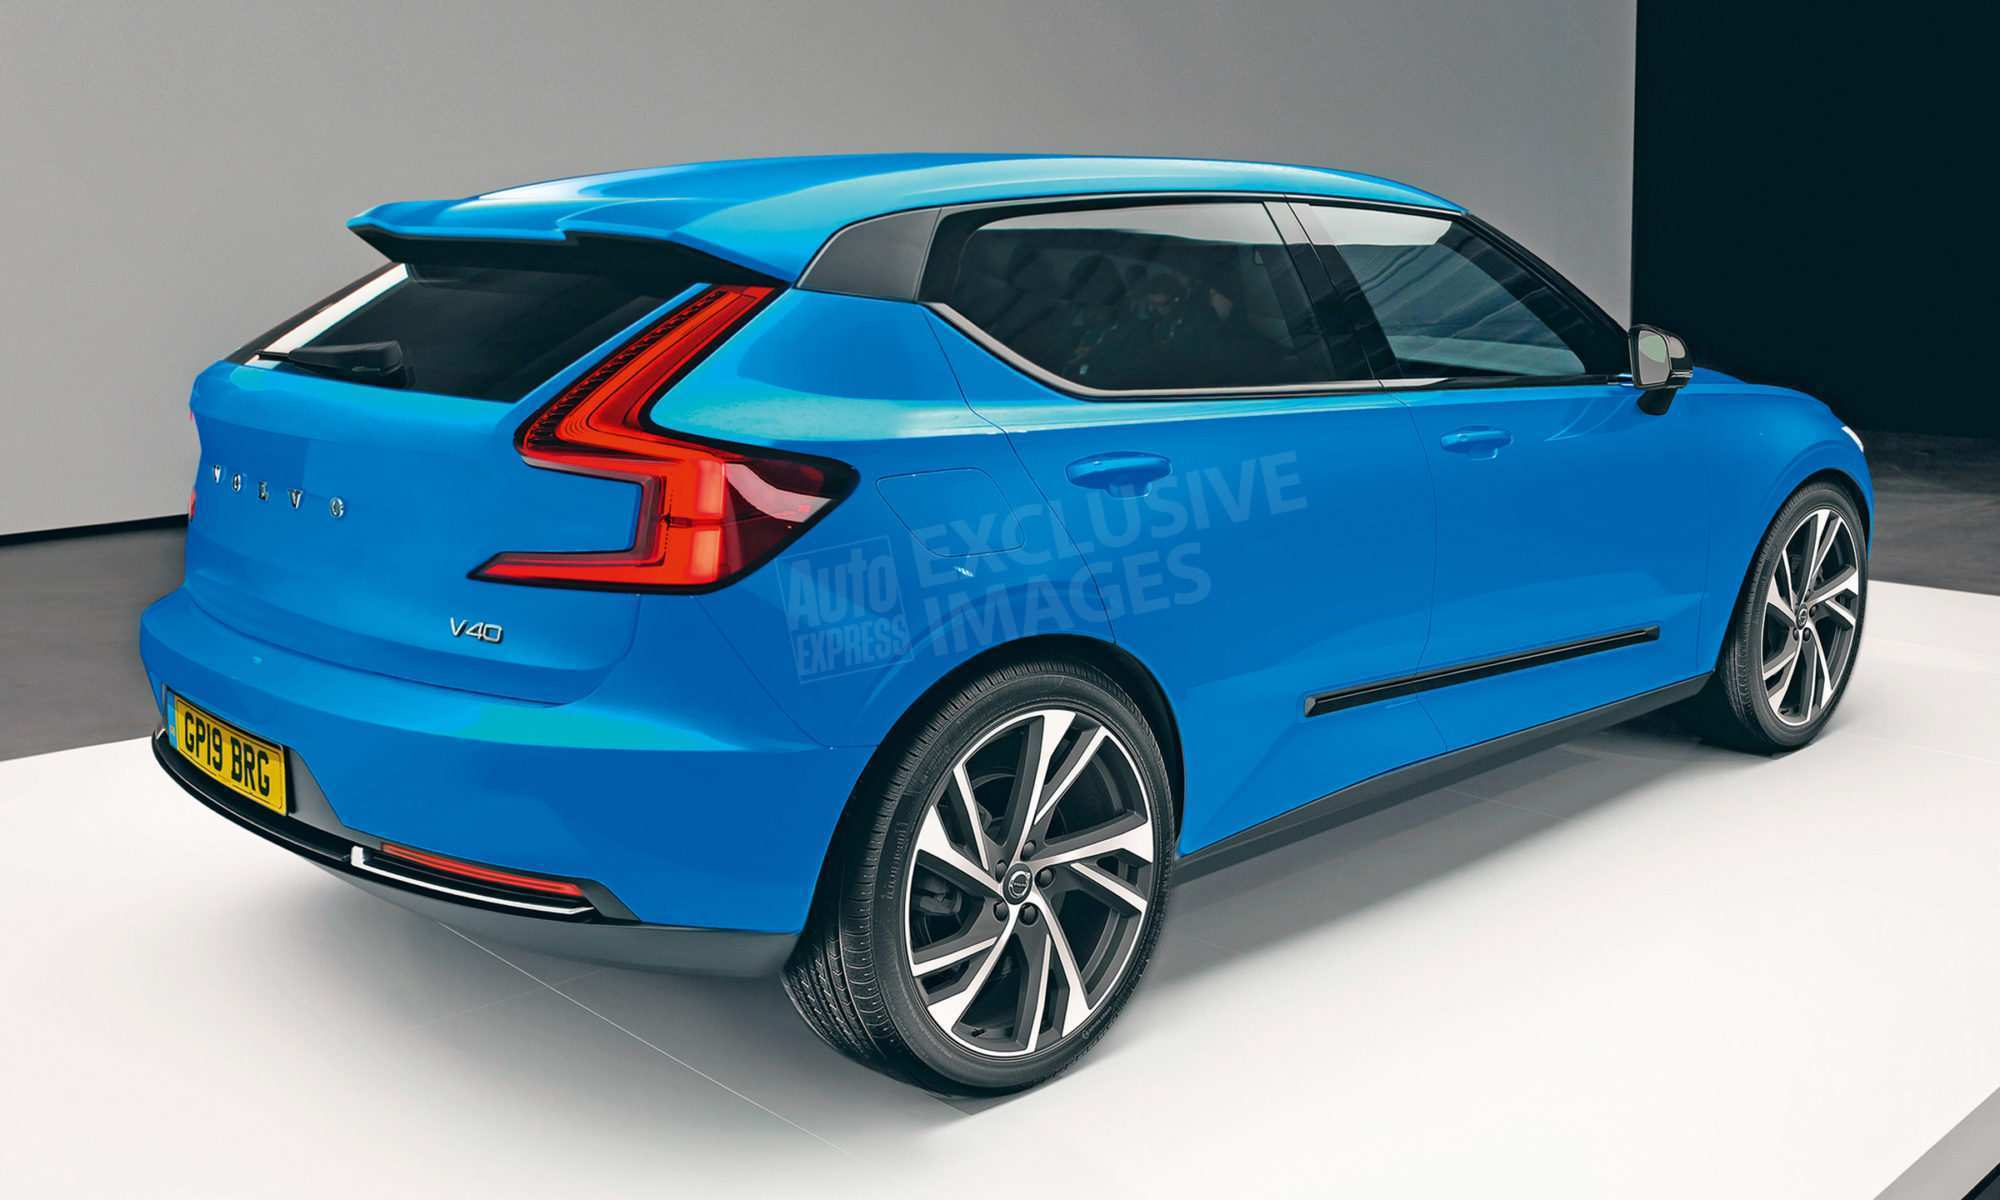 32 New Volvo V40 2019 Interior Exterior